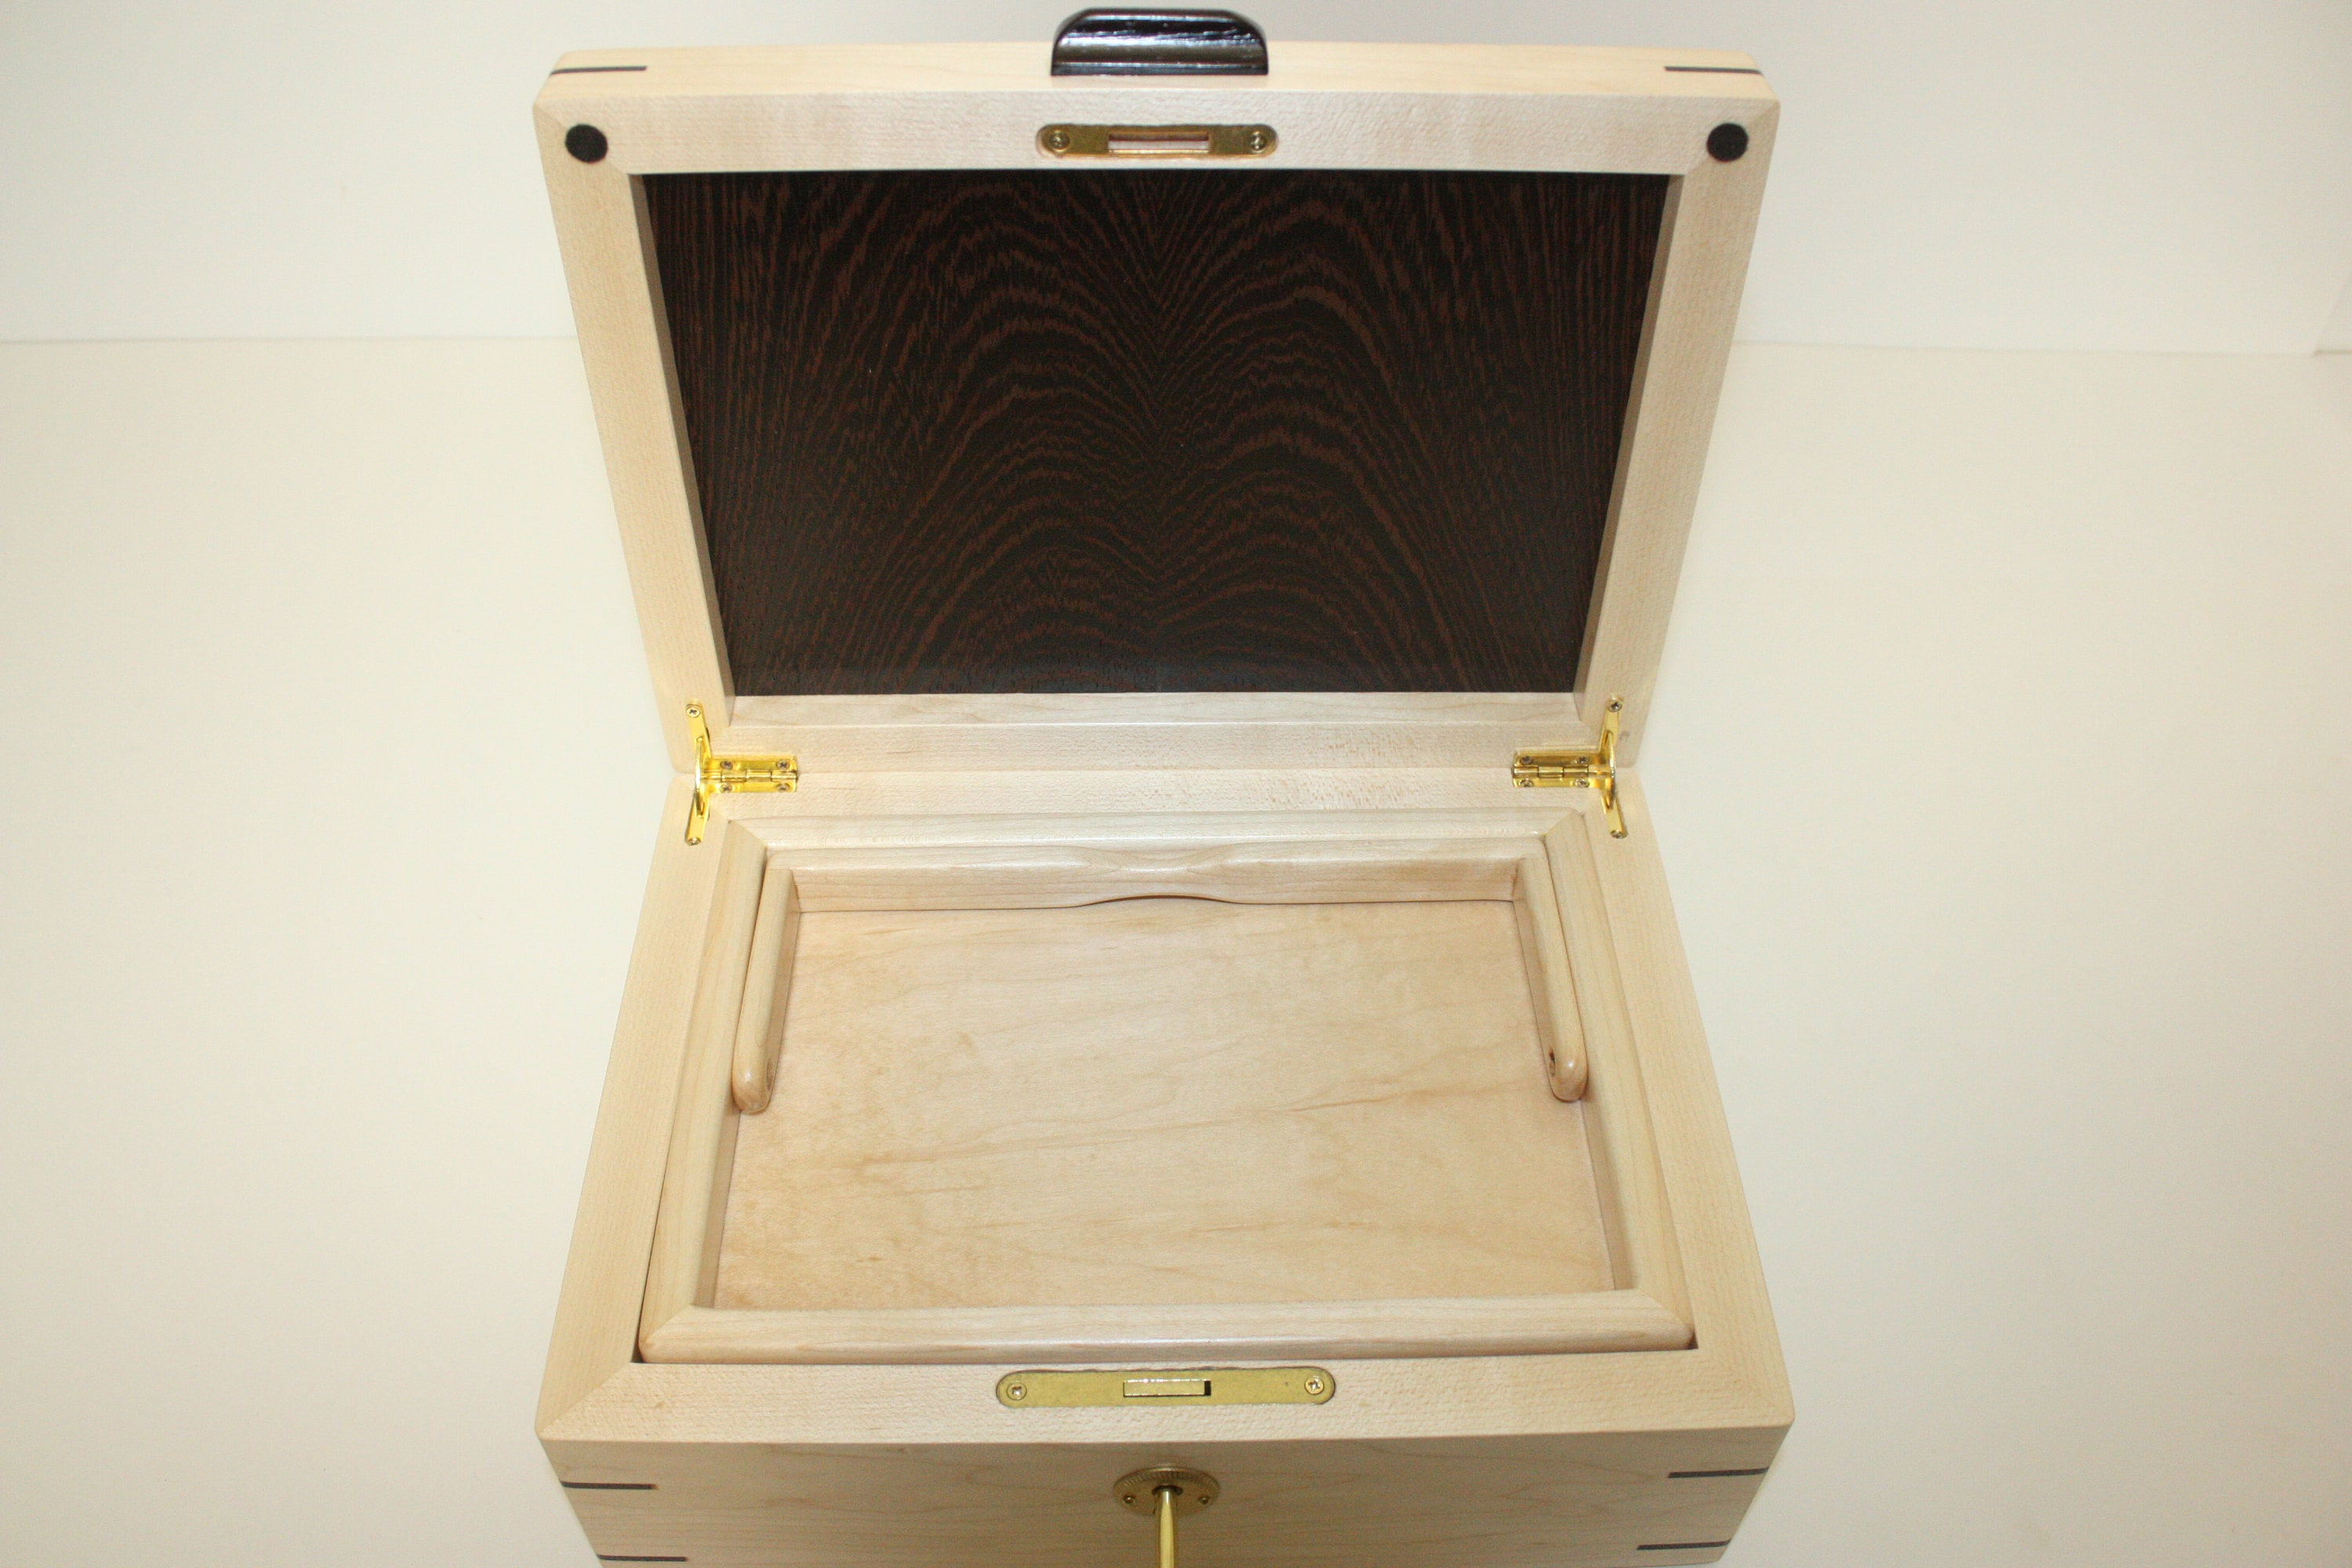 Maple and Wenge Wood Box with lift out tray